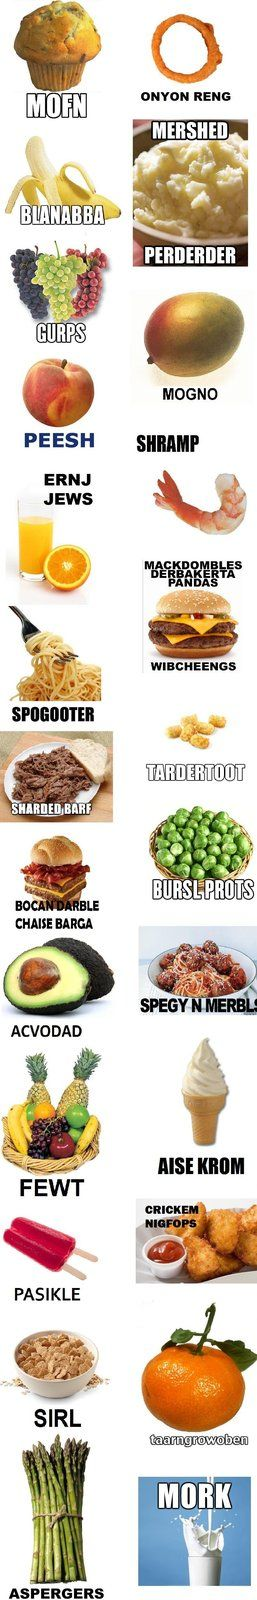 Pronounce Food Names While Eating Them